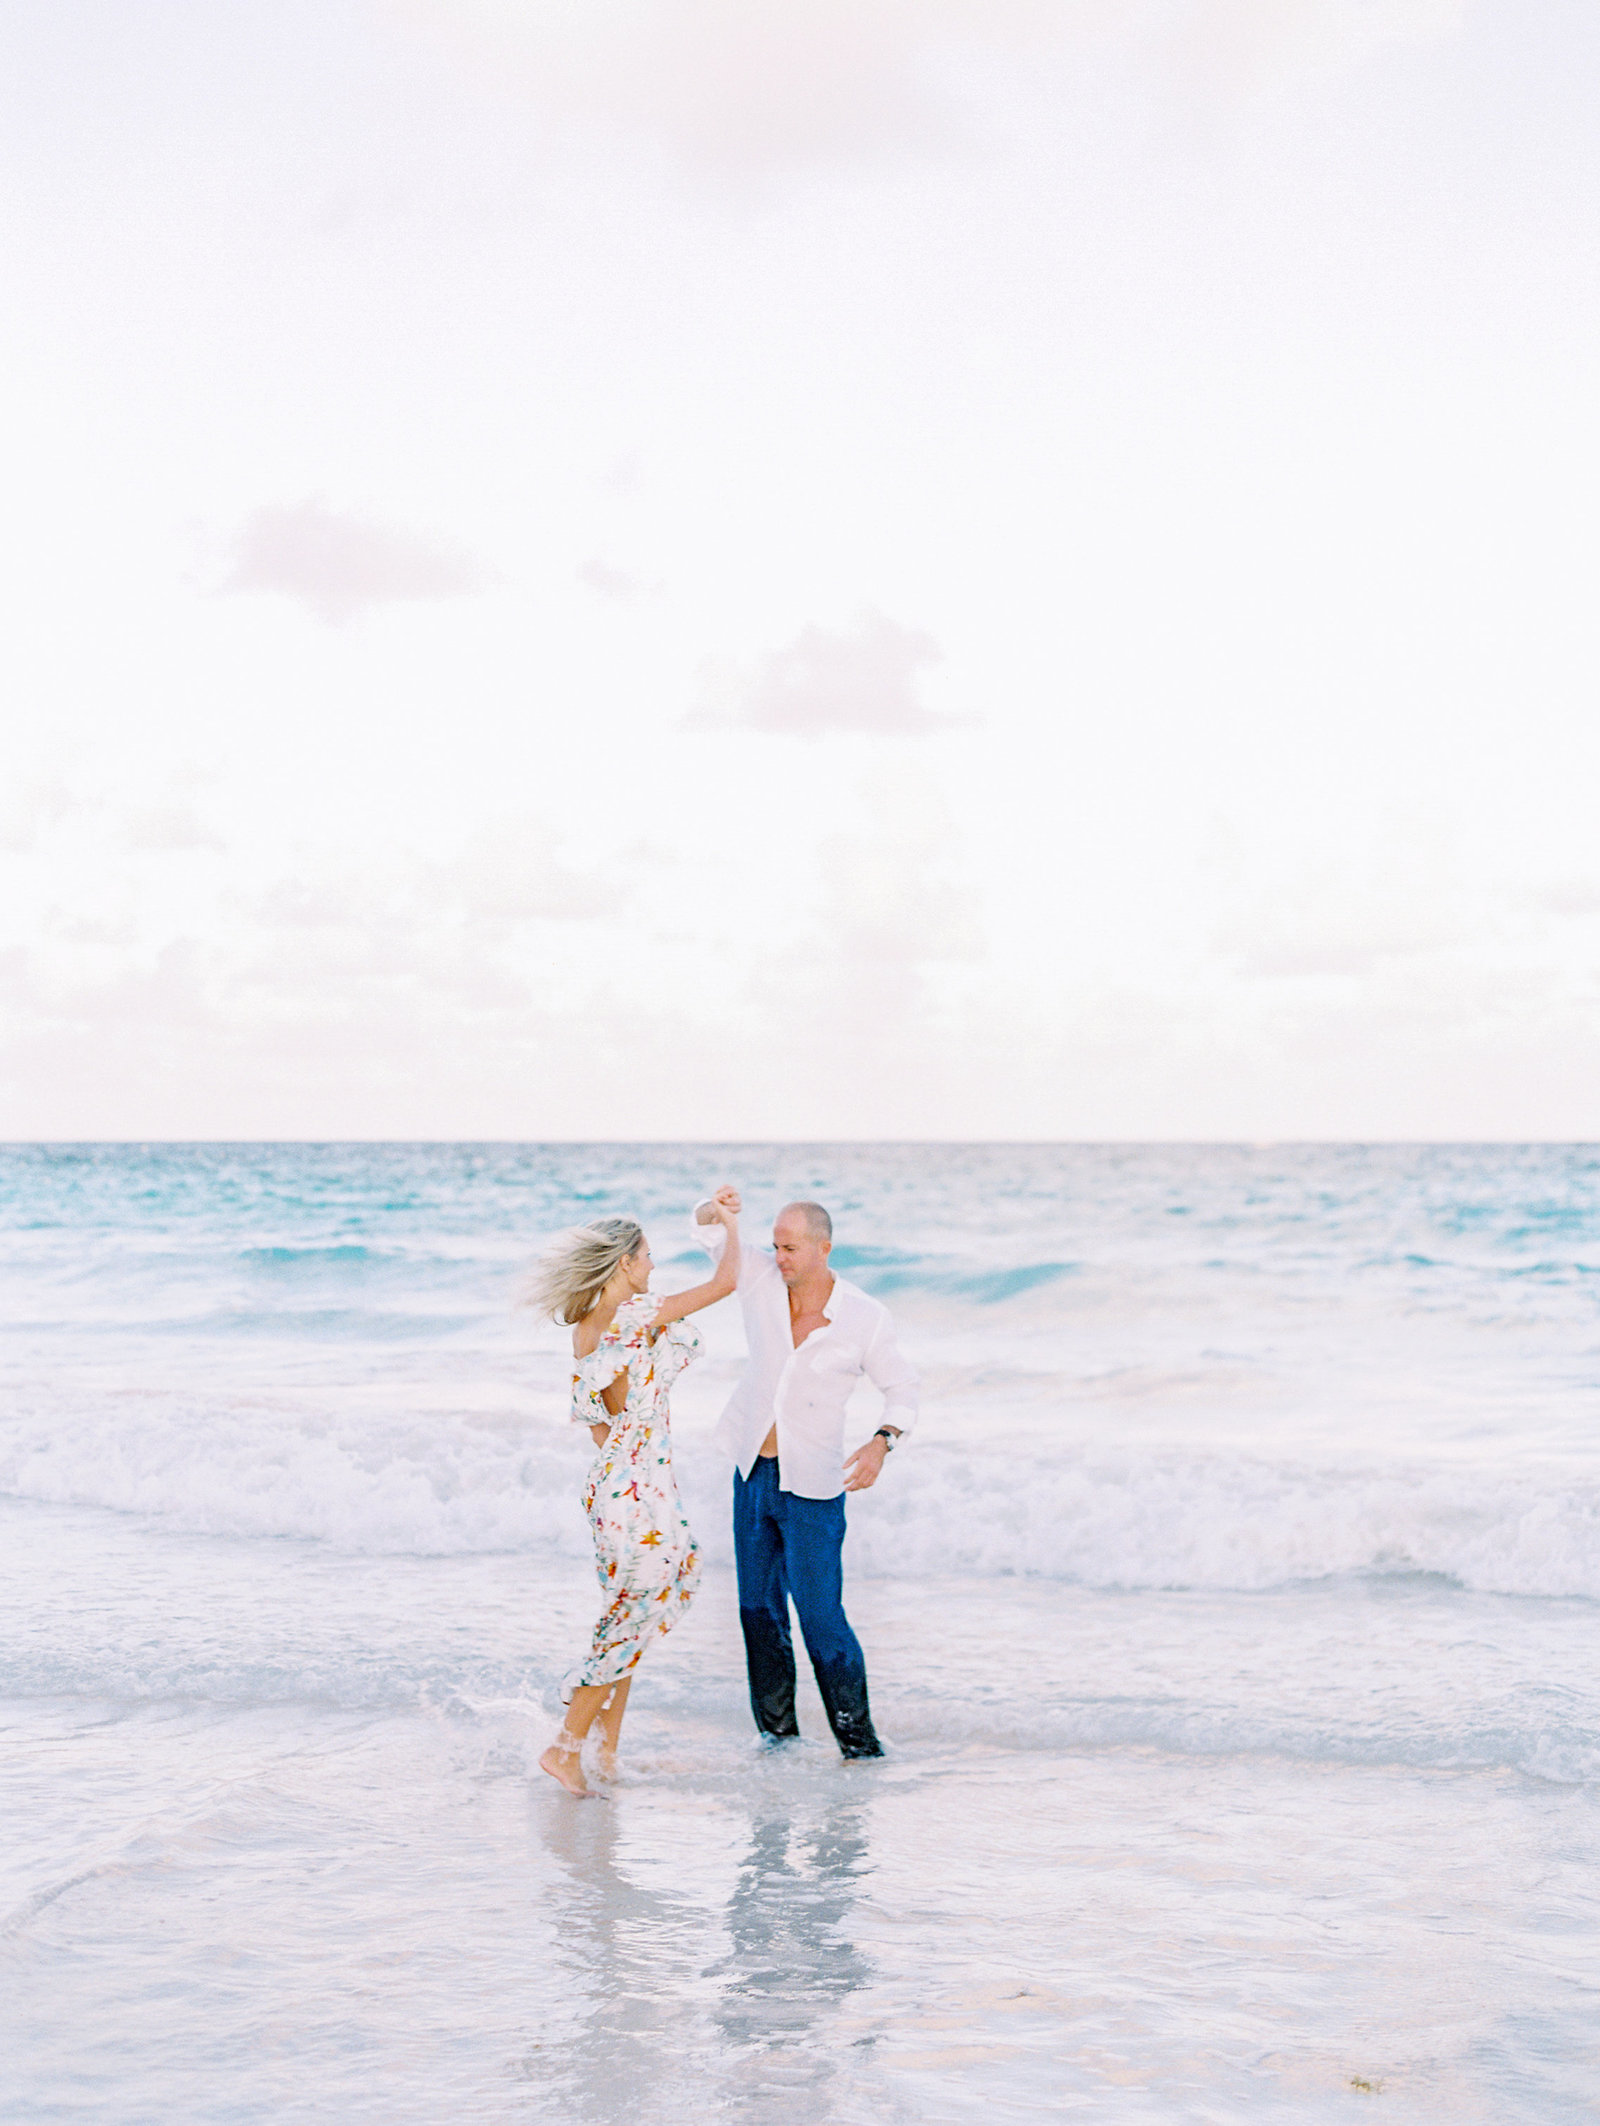 20171109-Pura-Soul-Photo-Engagement-Bahamas-Gillian-Eddy-Film-9